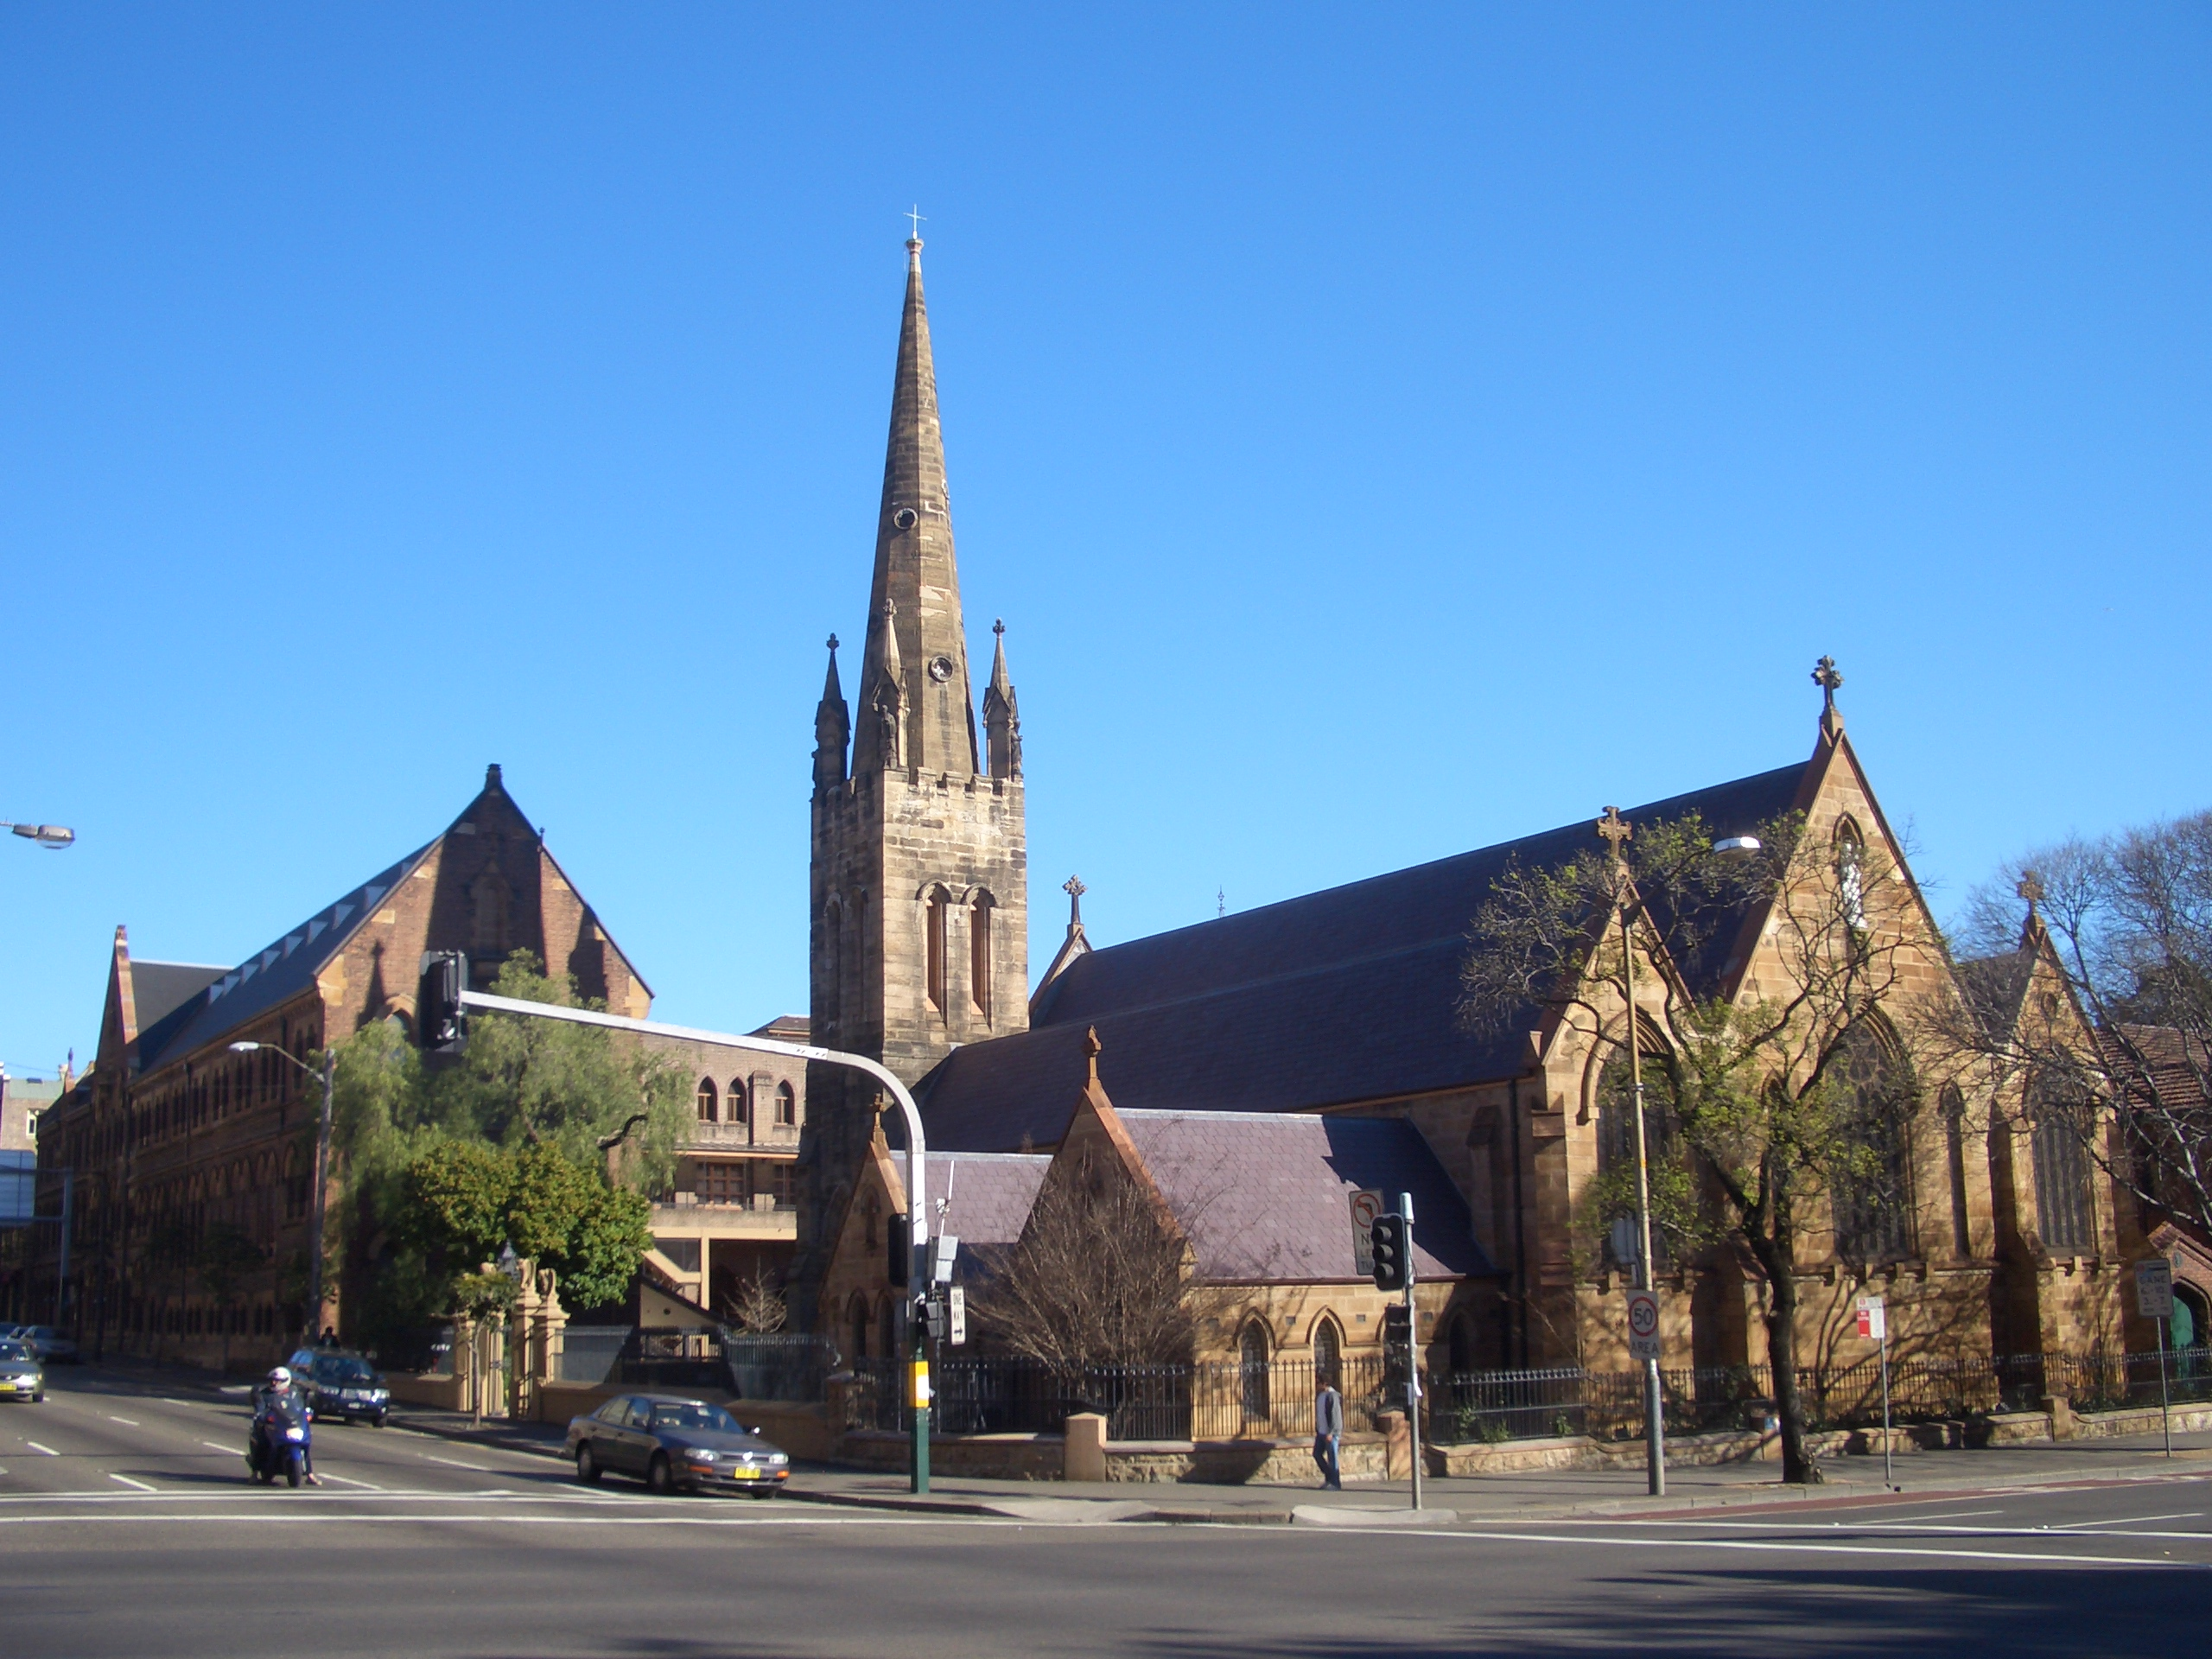 File:Chippendale University of Notre Dame.JPG - Wikimedia Commons